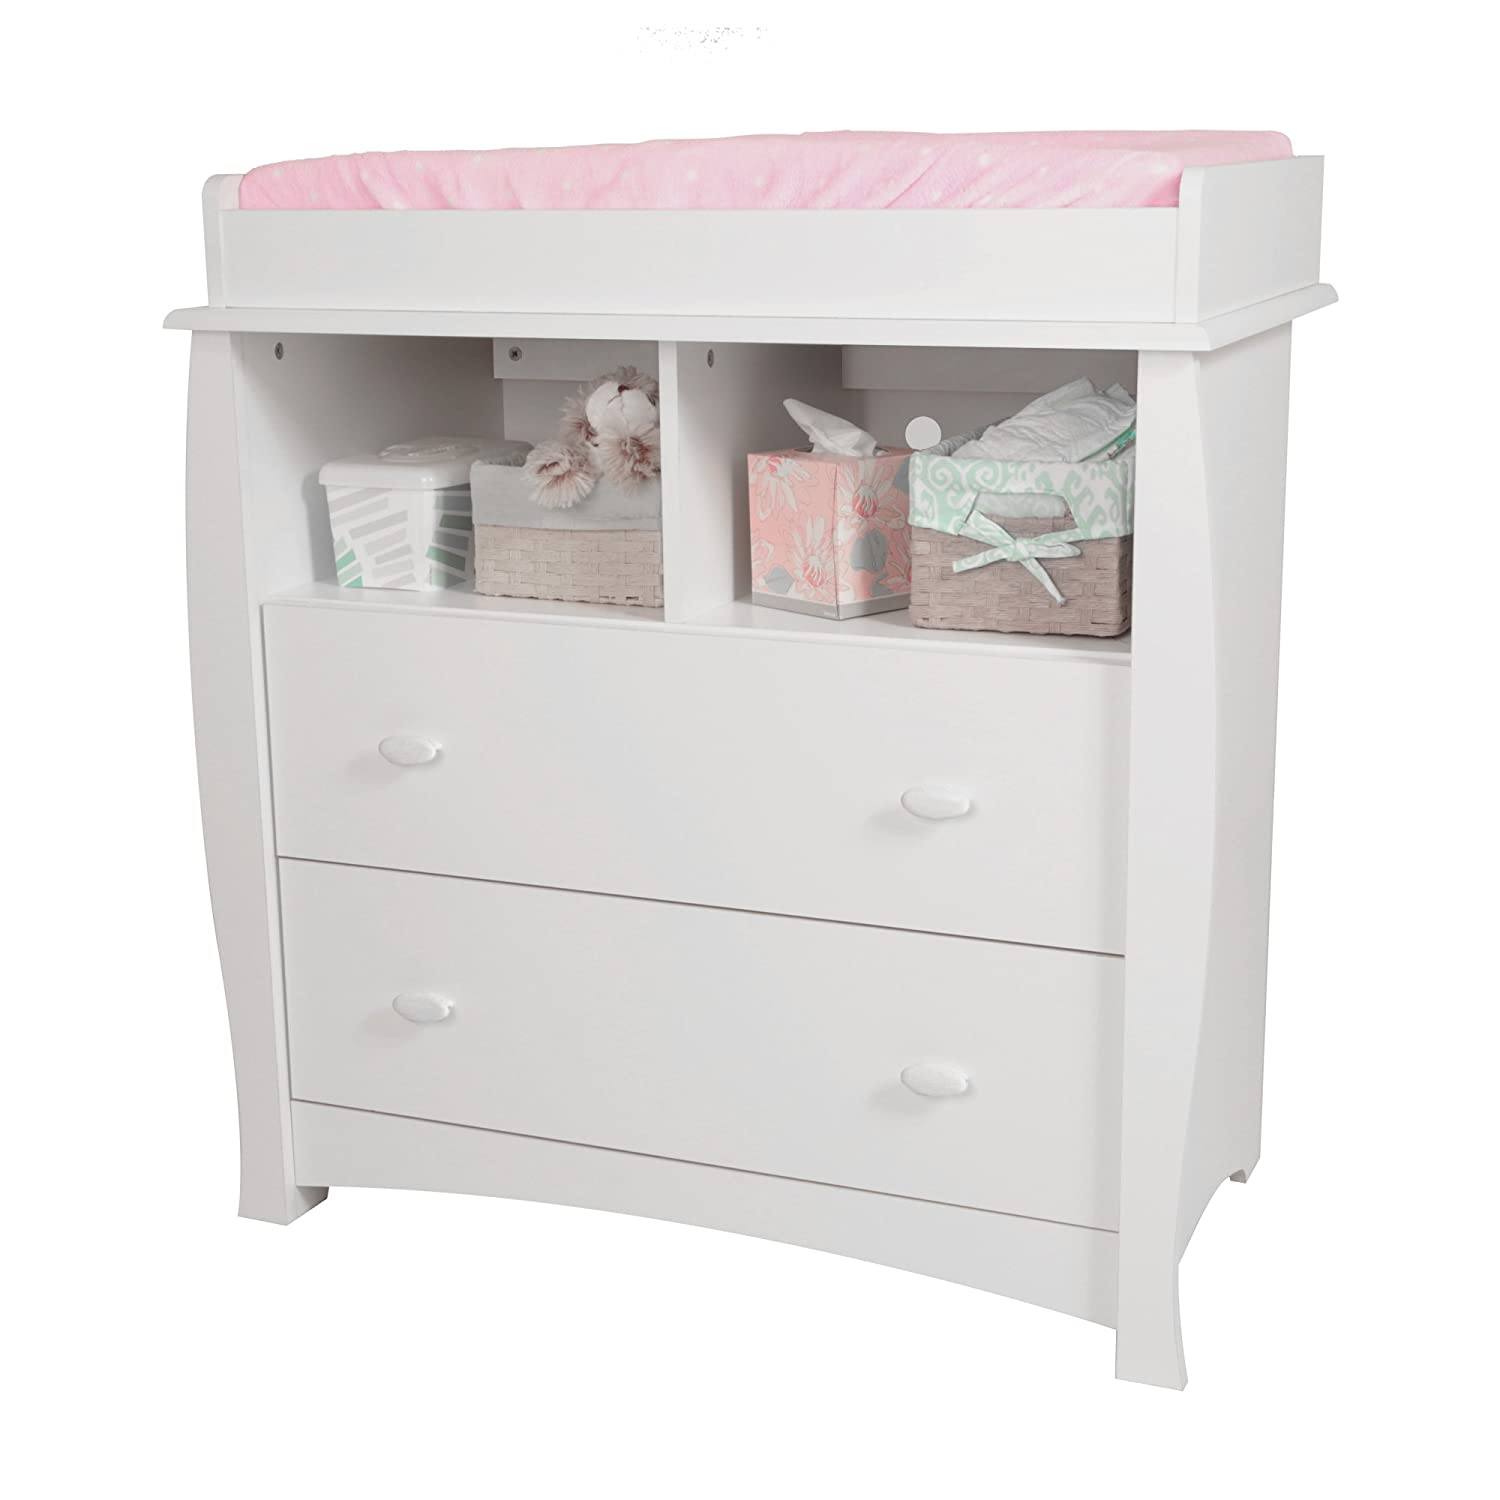 Amazon South Shore Beehive Changing Table with Removable